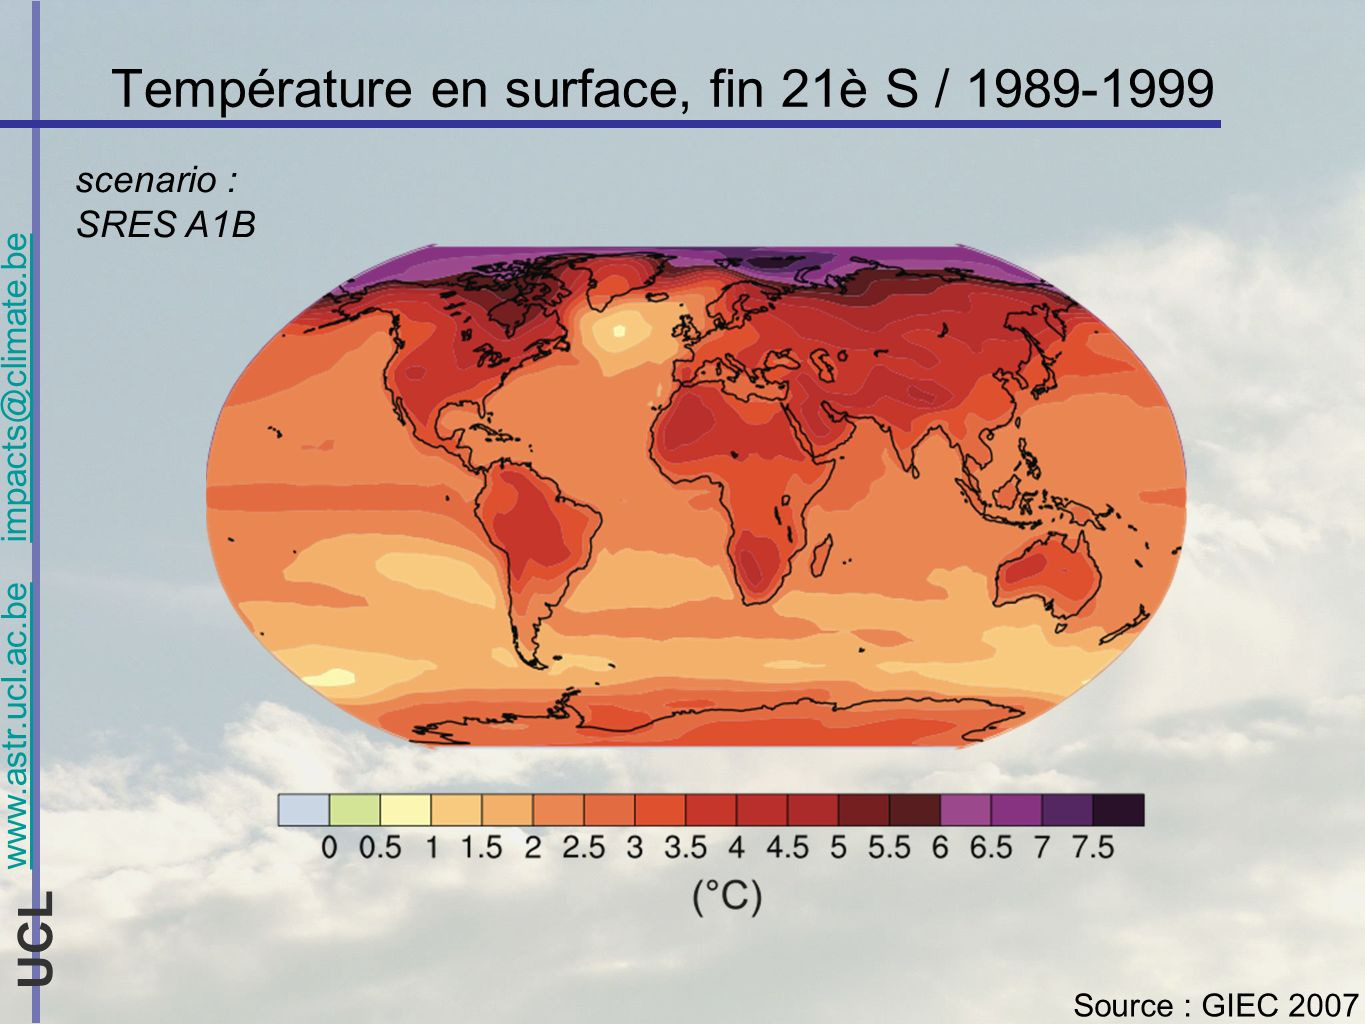 www.astr.ucl.ac.be impacts@climate.be UCL Température en surface, fin 21è S / 1989-1999 Source : GIEC 2007 scenario : SRES A1B